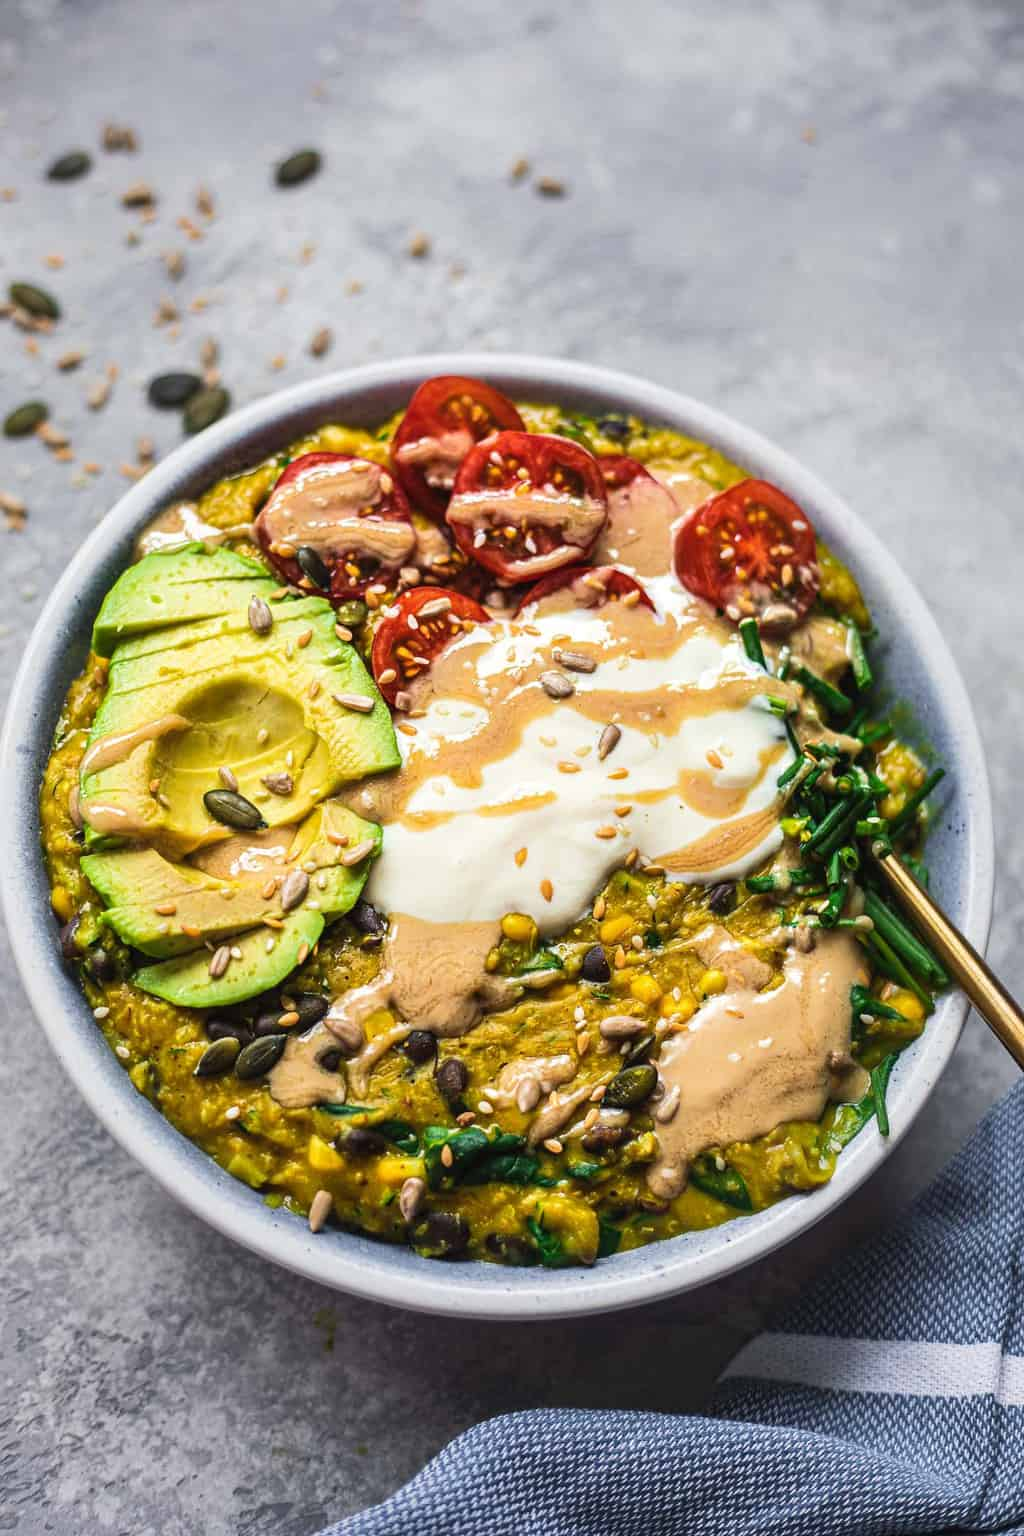 Bowl of vegan oats with avocado and tomatoes